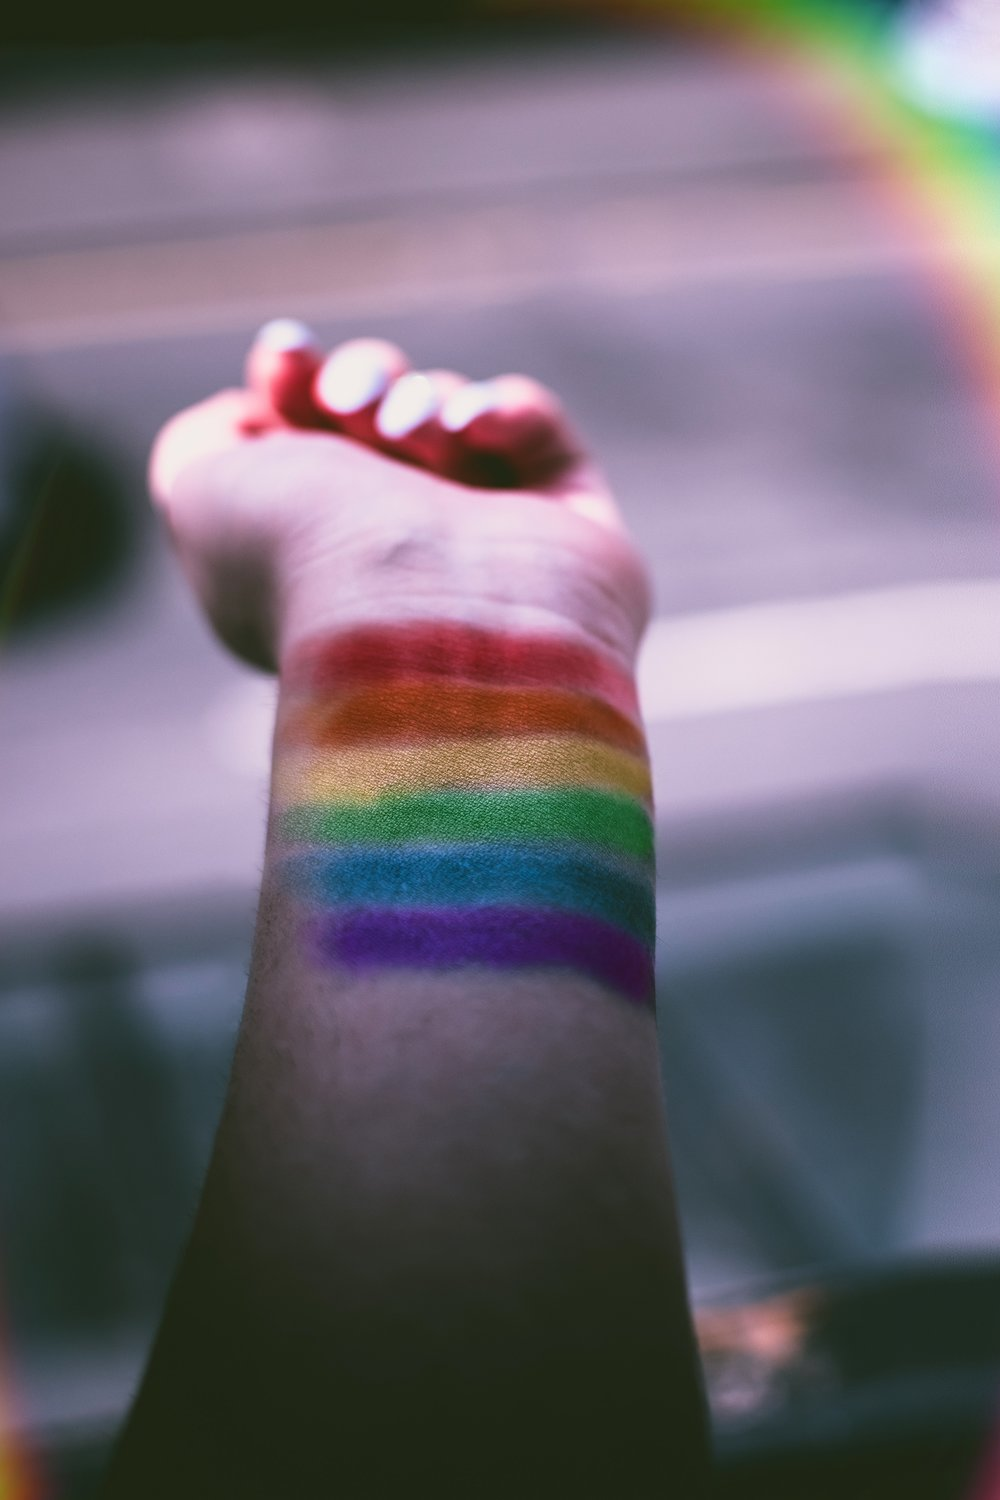 gay marriage counseling columbia mo, lesbian couples therapy columbia mo, the counseling hub